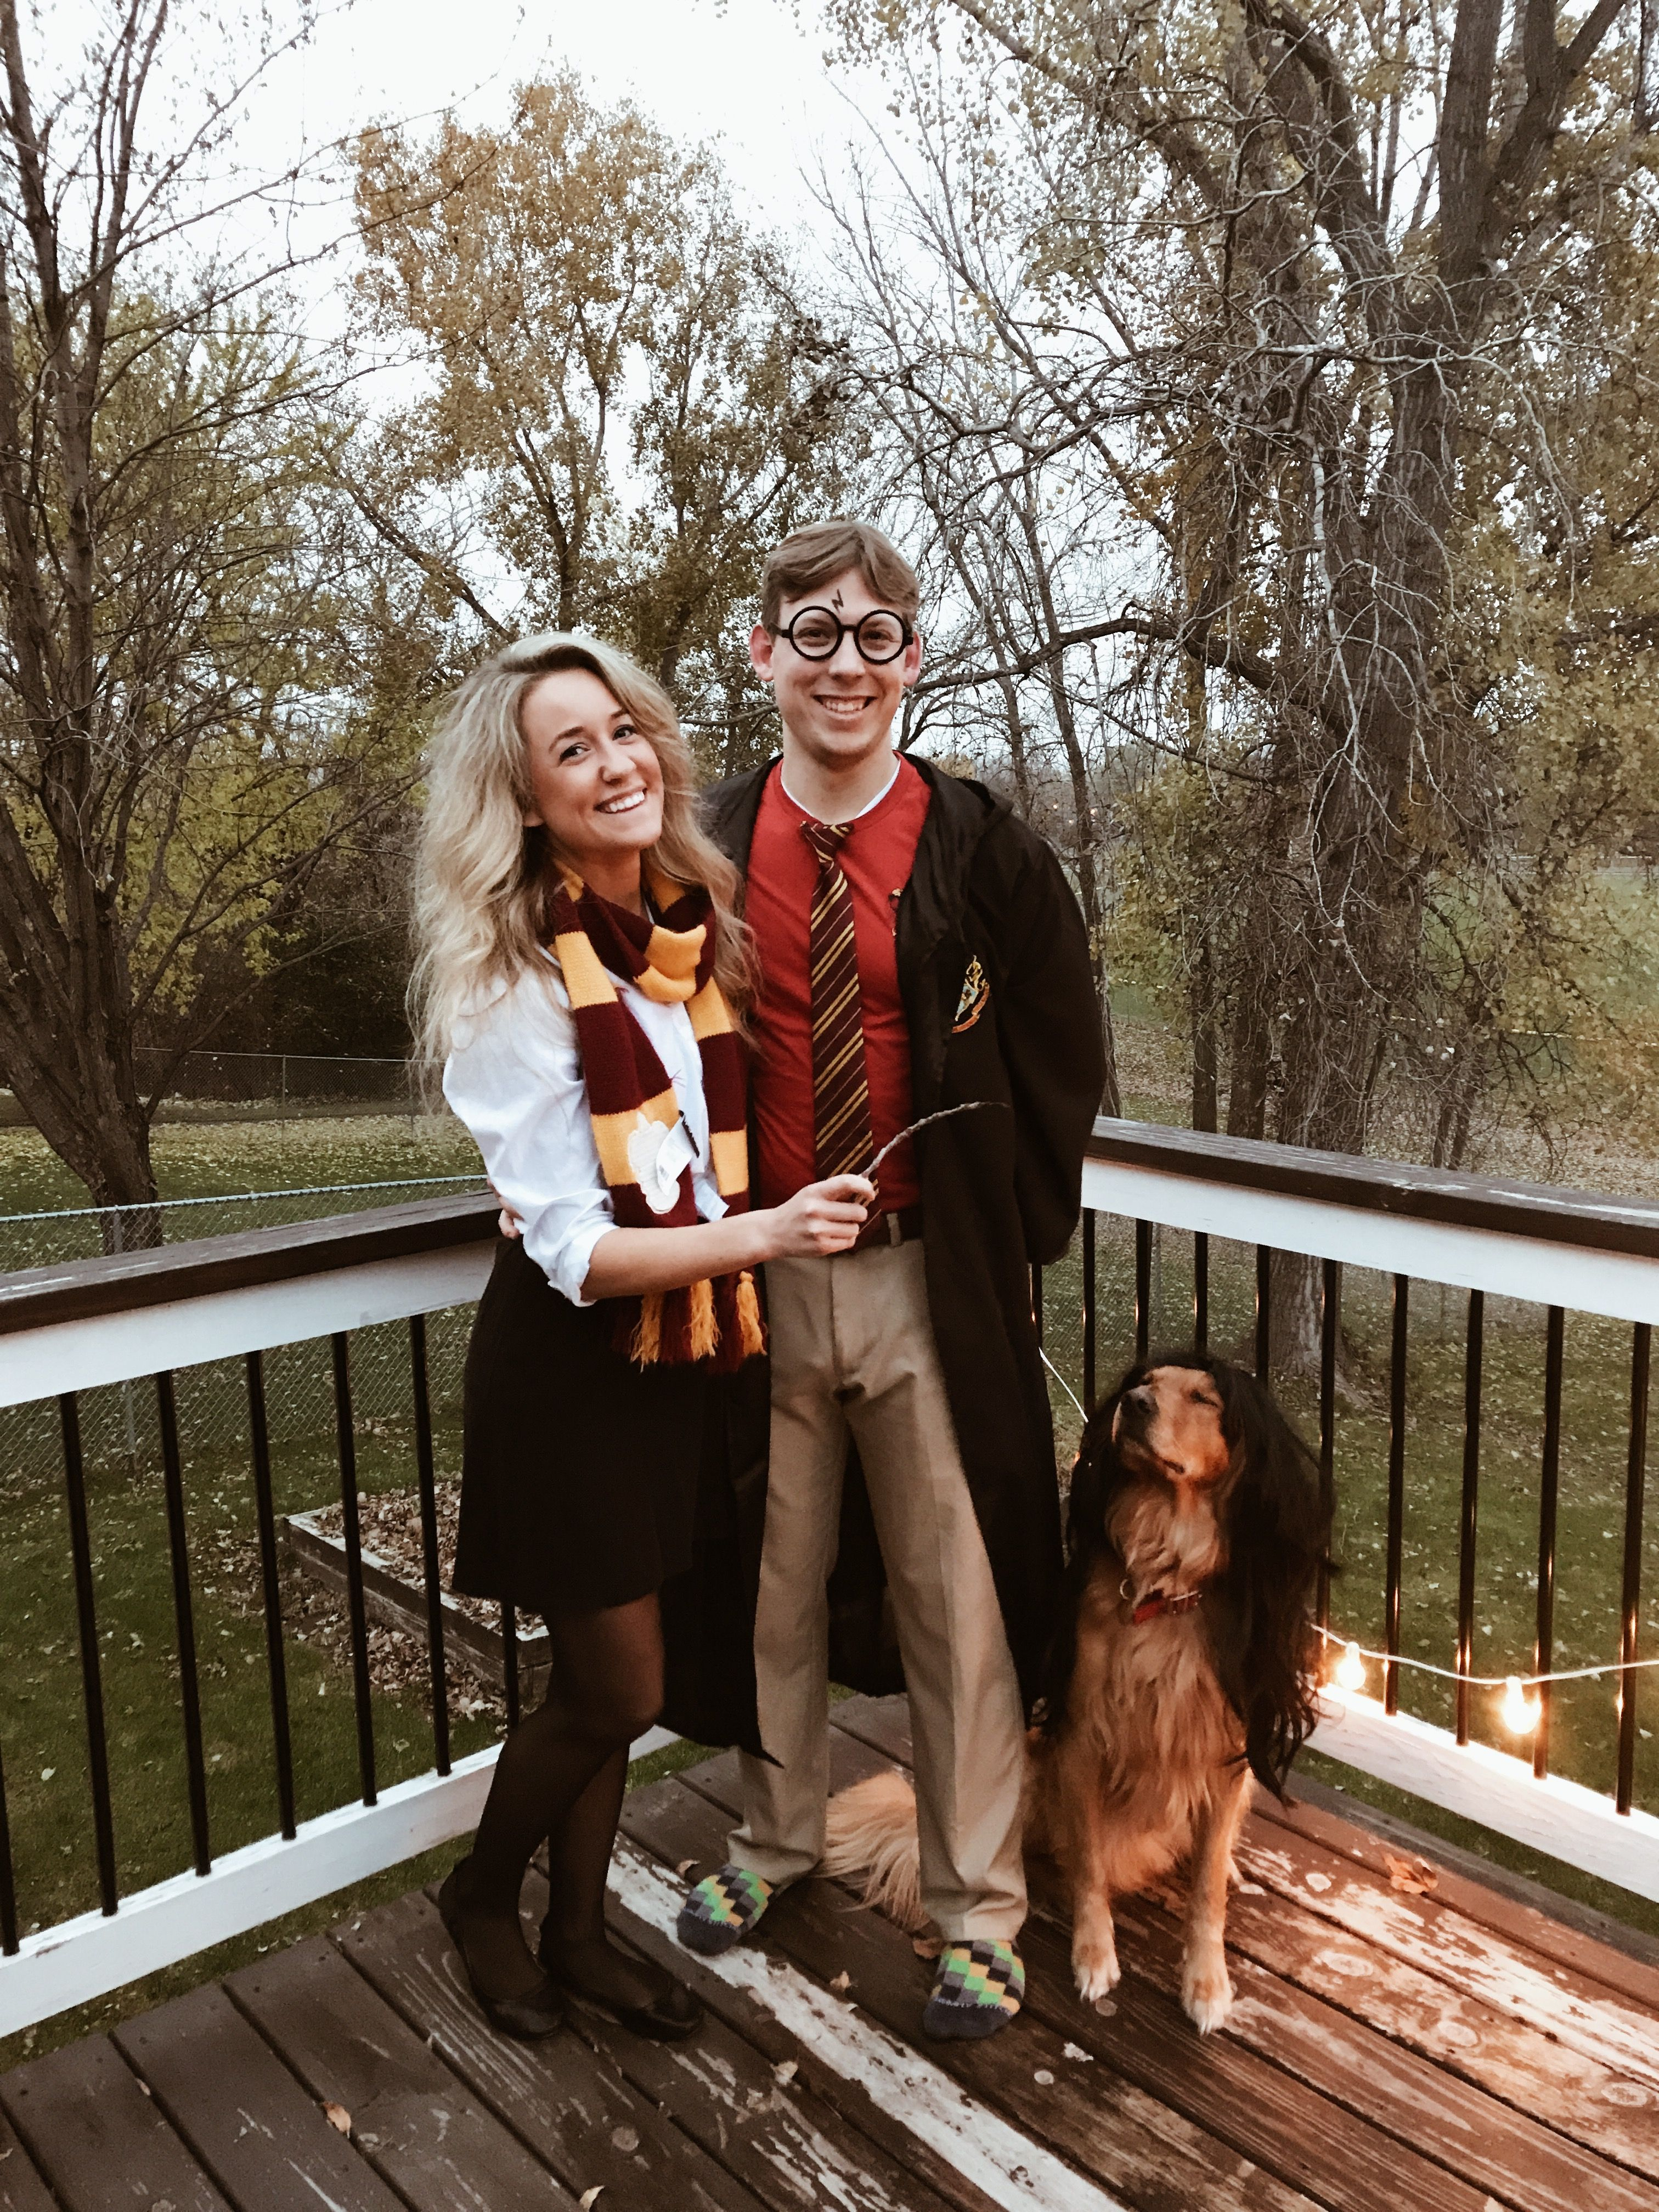 Harry Potter Couples Costume With Dog As Professor Snape Instagram